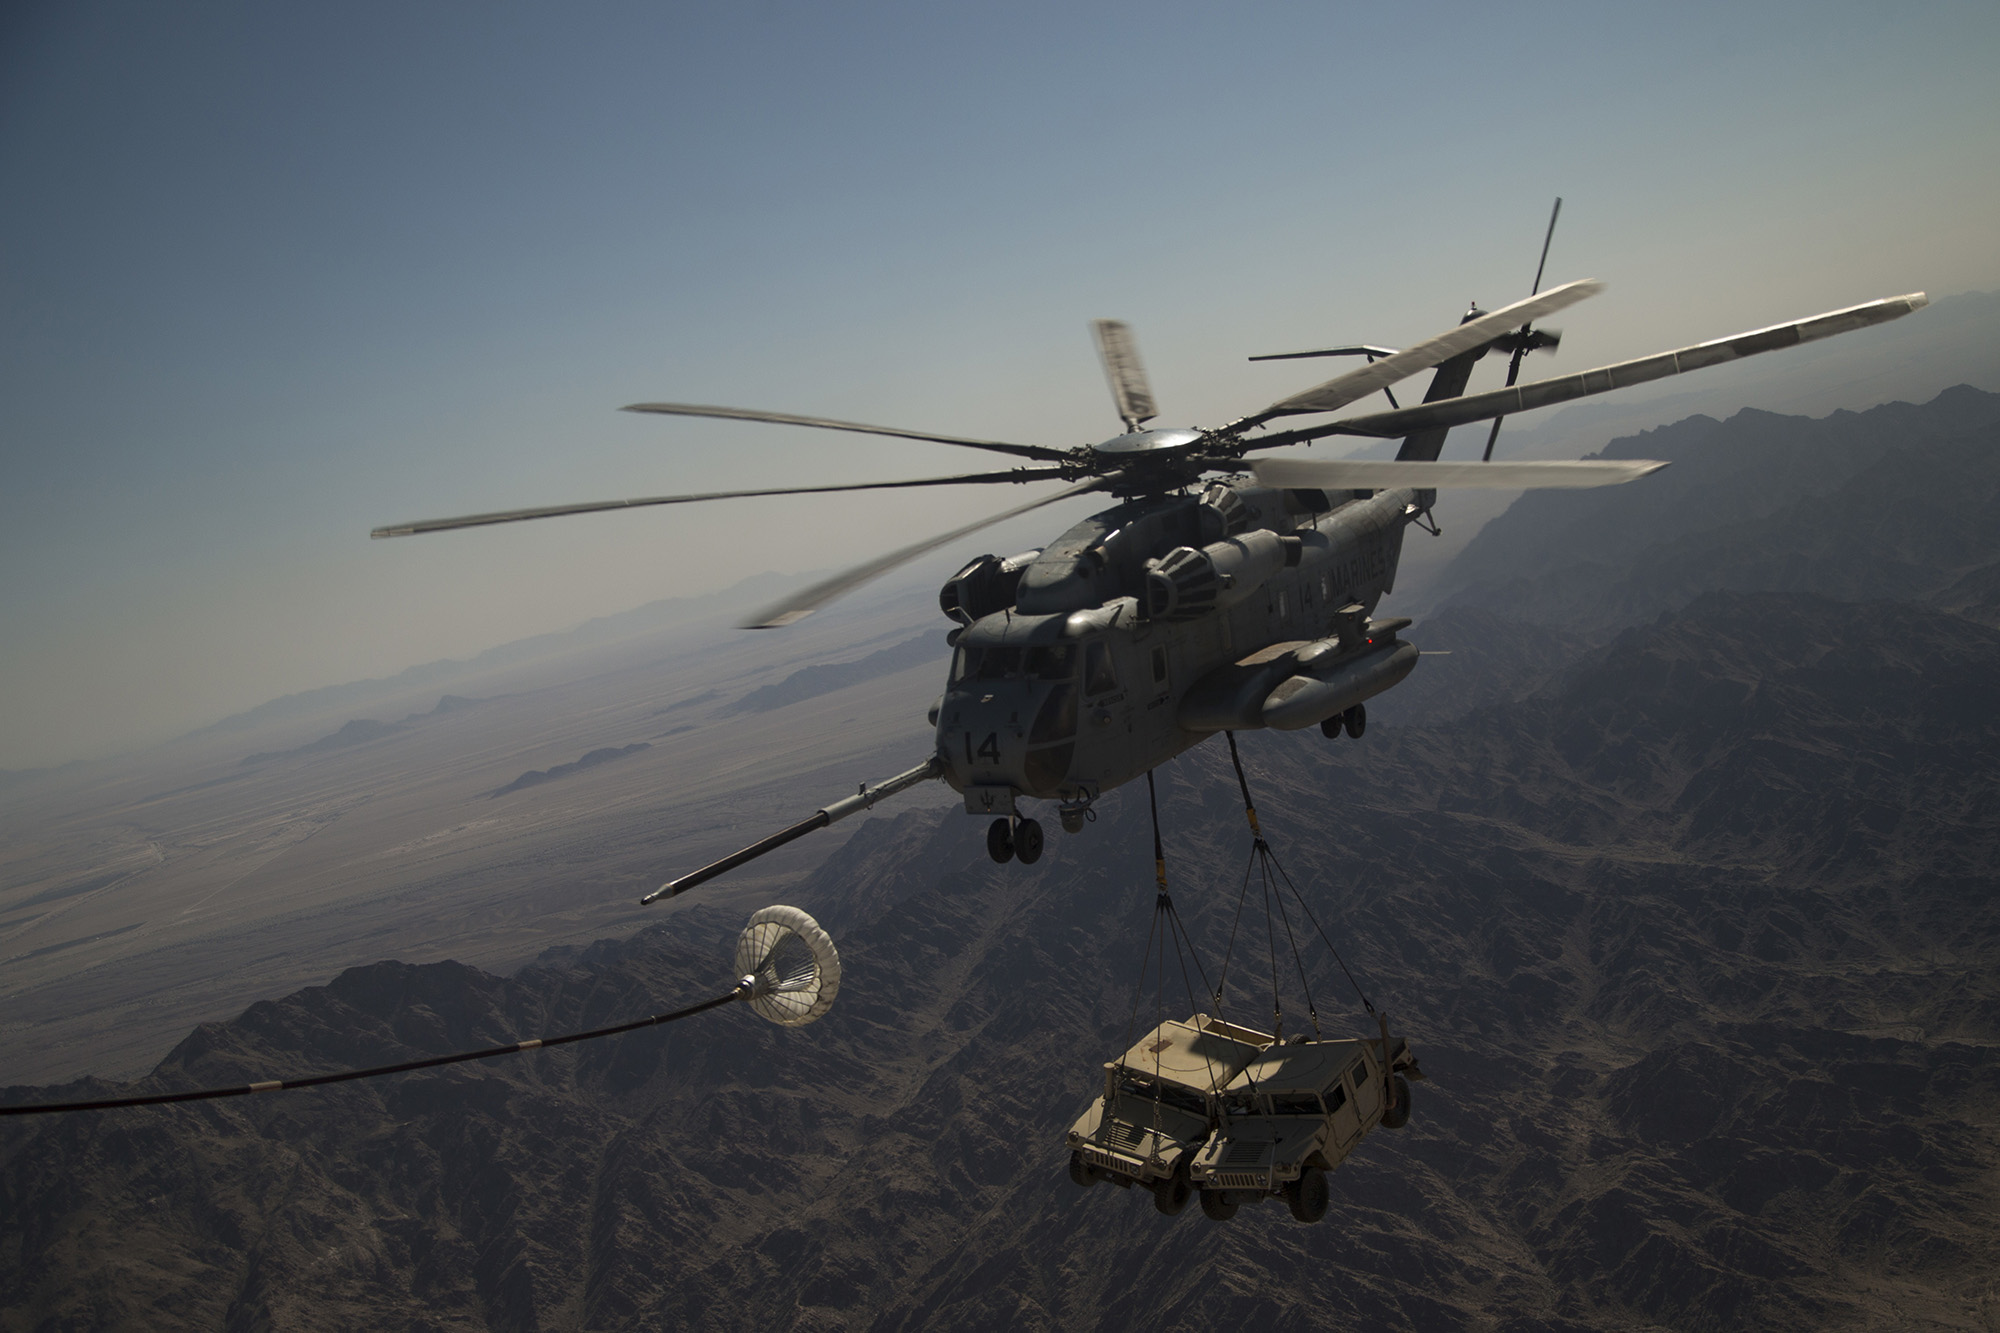 A U.S. Marine Corps CH-53E Super Stallion executes an air-to-air refuel during a heavy lift exercise in support of Weapons and Tactics Instructor (WTI) course 2-21, near Yuma, Ariz., March 31, 2021. (Lance Cpl. Camille Polete/Marine Corps)